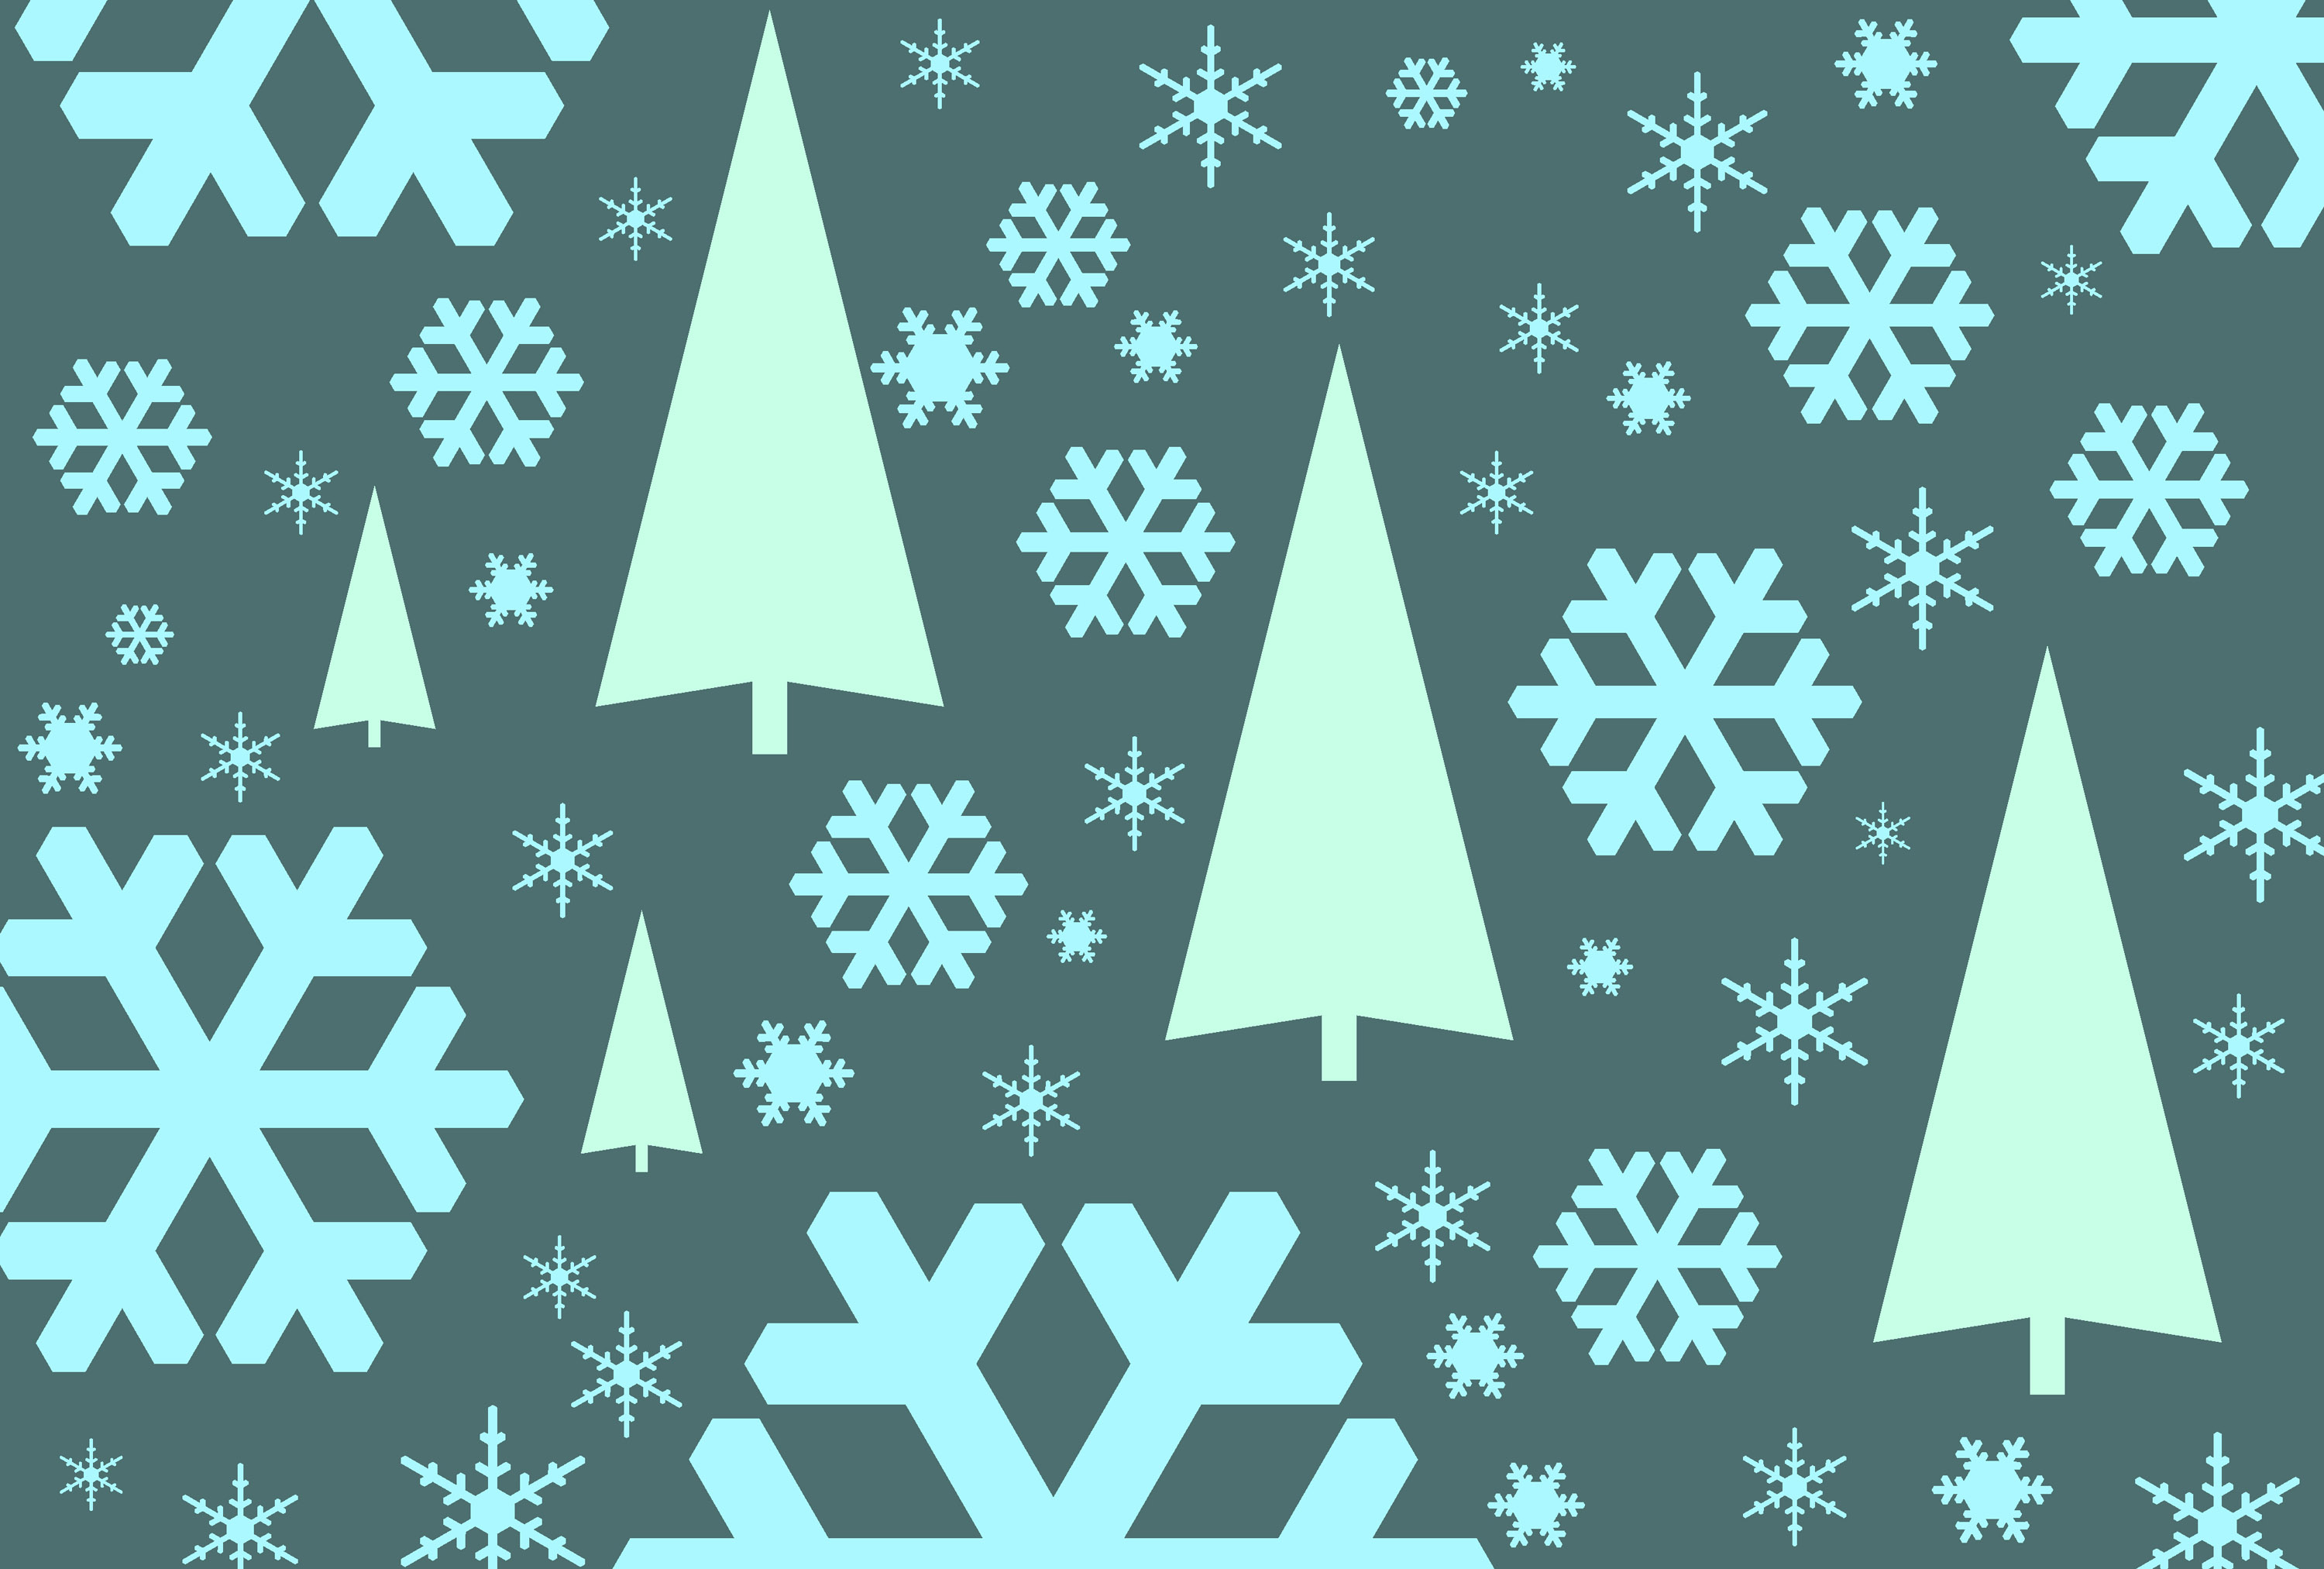 holiday backgrounds, a graphic tree and falling snowflake symbols